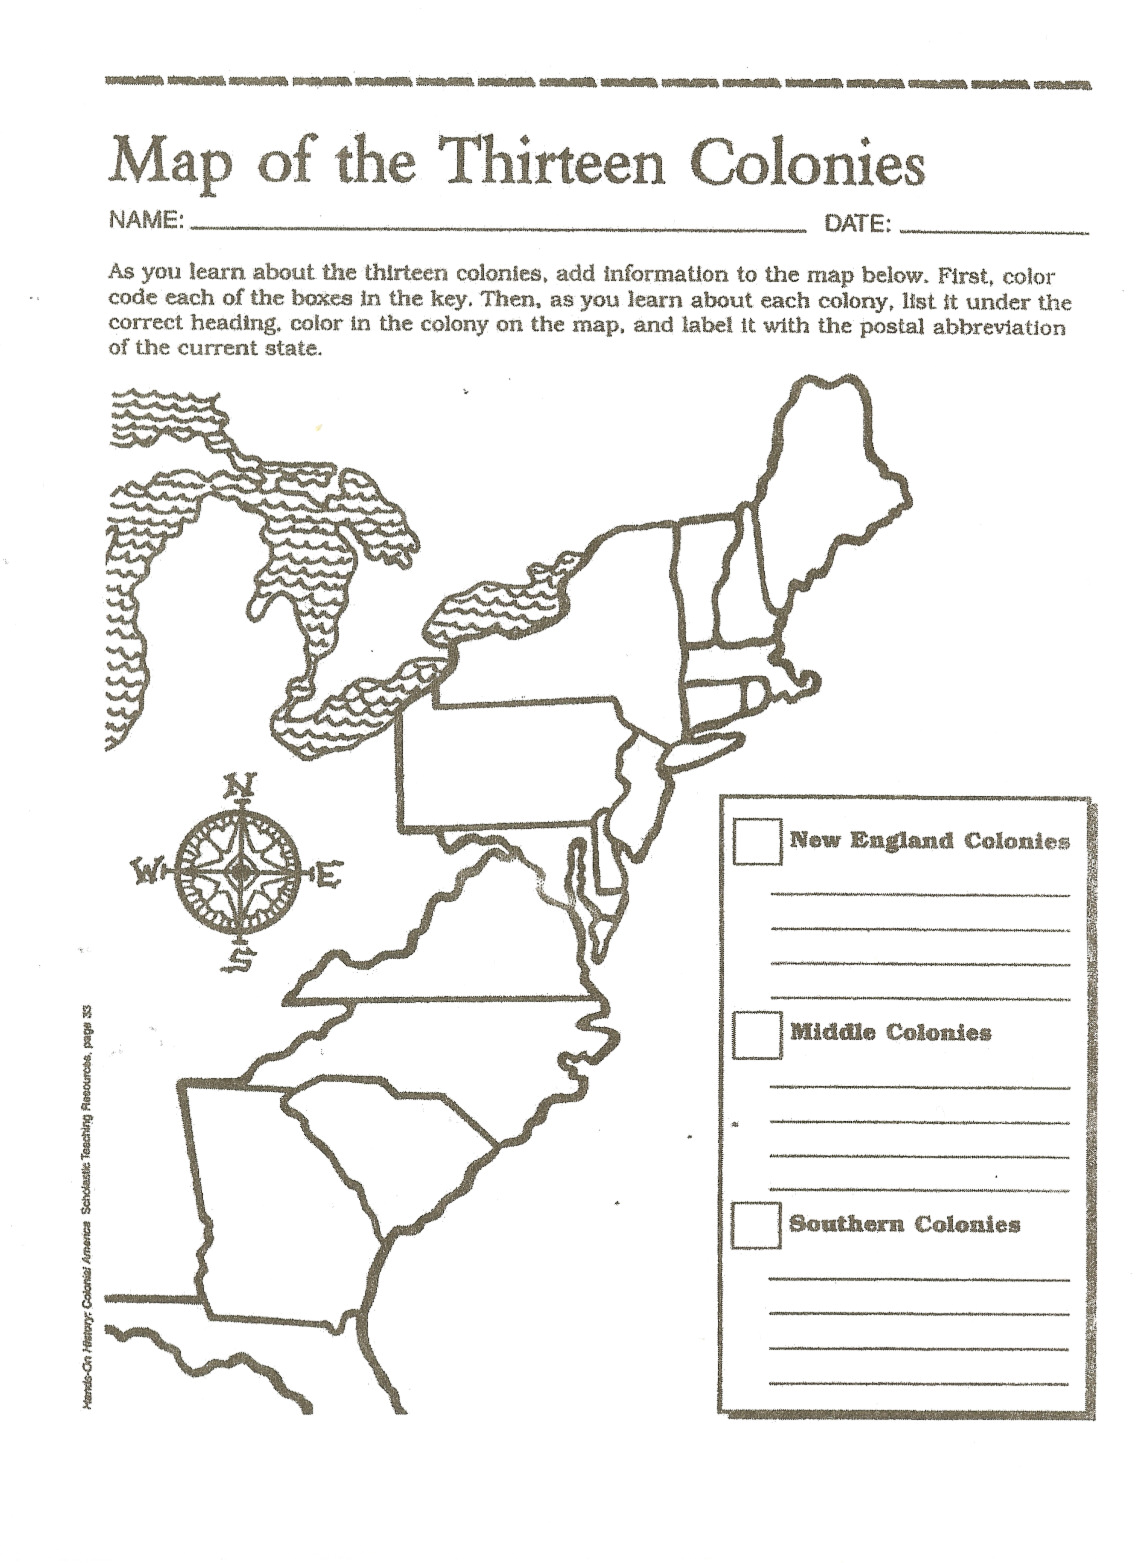 Coloring Pages 13 Colonies Coloring Pages thirteen original colonies map primary worksheet free to print of the colonies